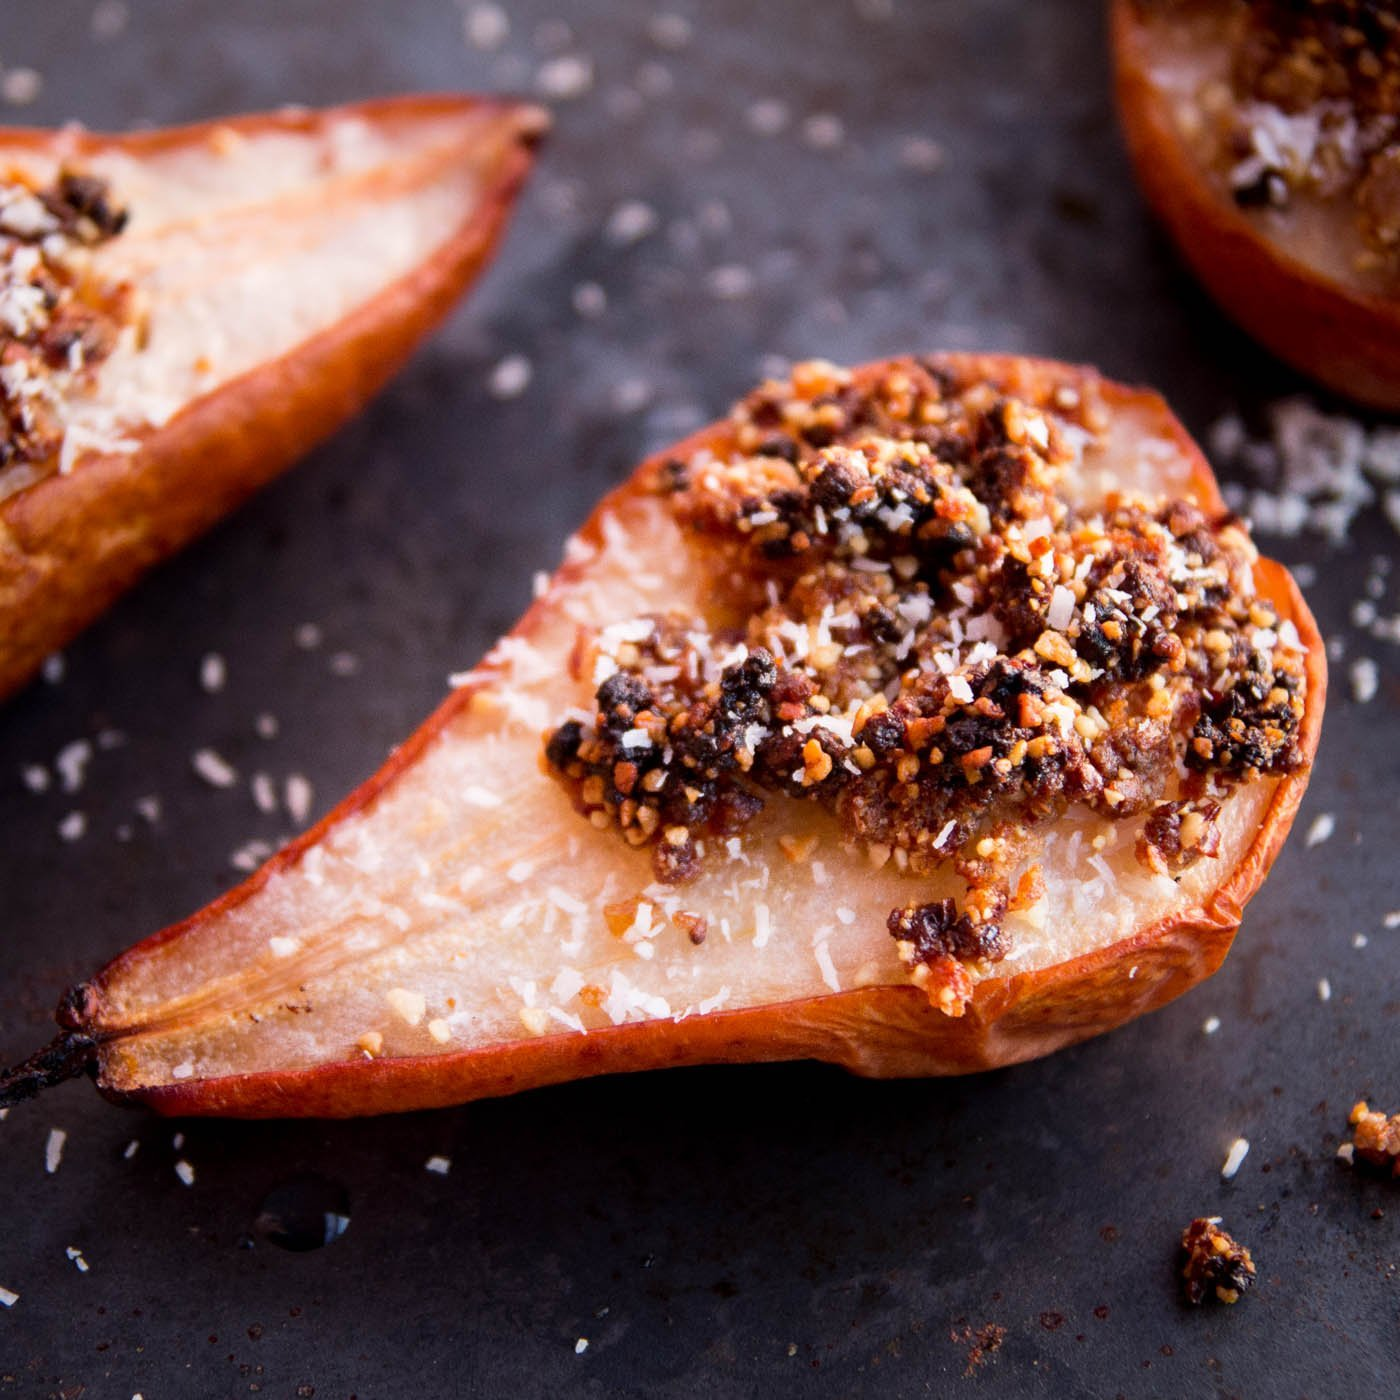 Baked Pears A Healthy Dessert Indiaphile